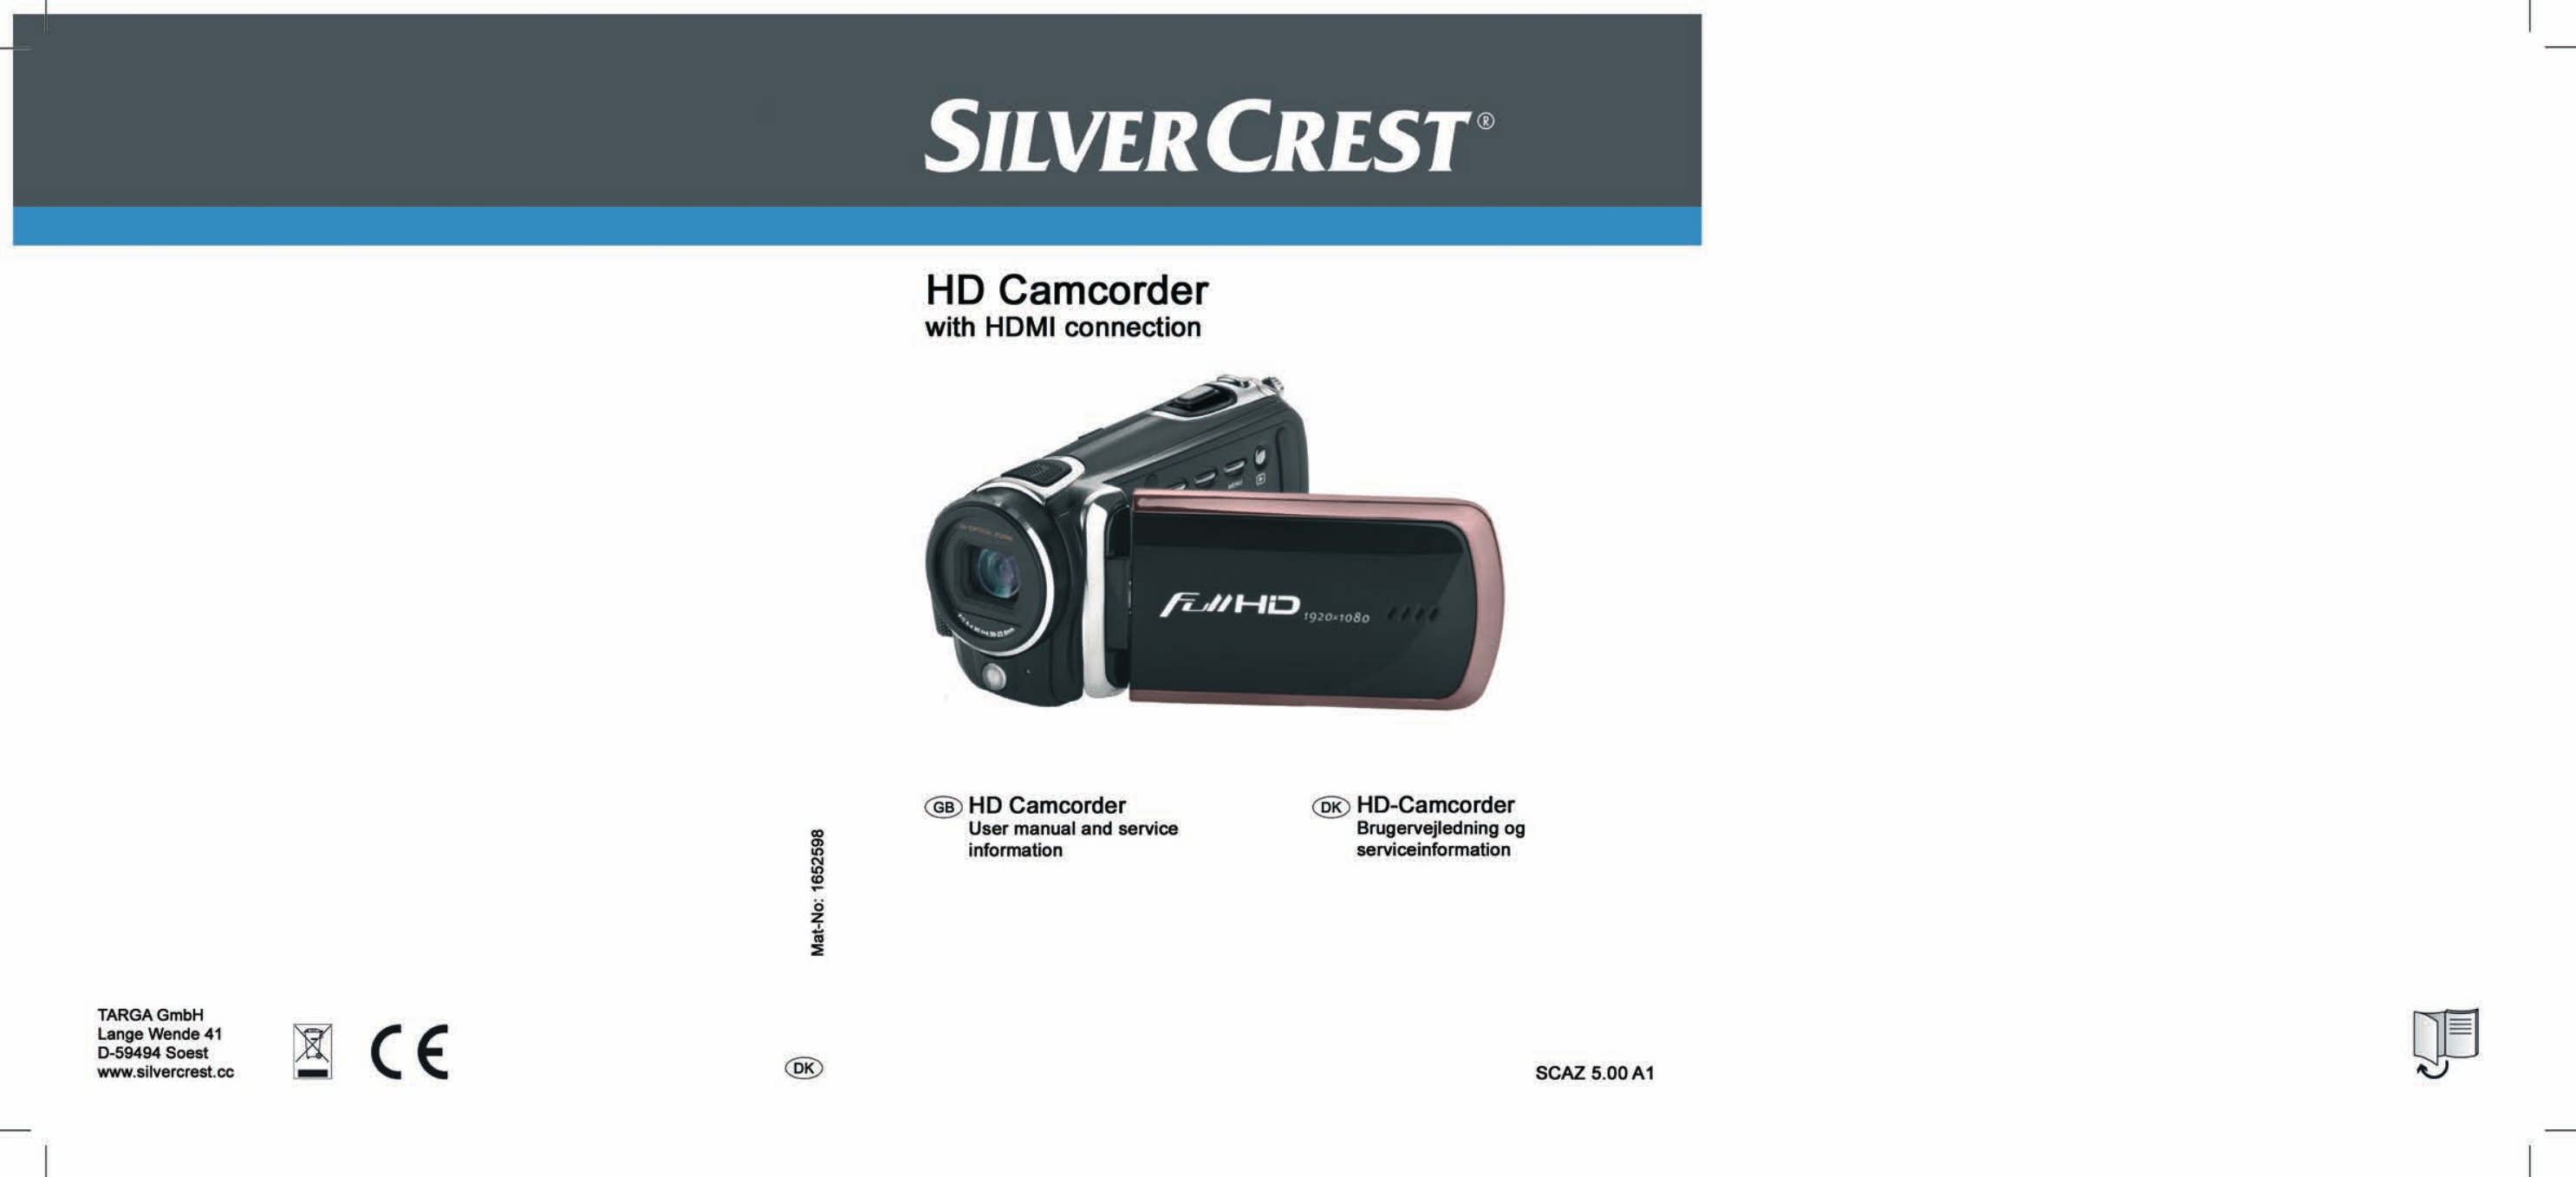 silvercrest scaz 5 00 a1 user manual 155 pages rh manualsdir com advanced portable car camcorder user manual advanced portable car camcorder user manual